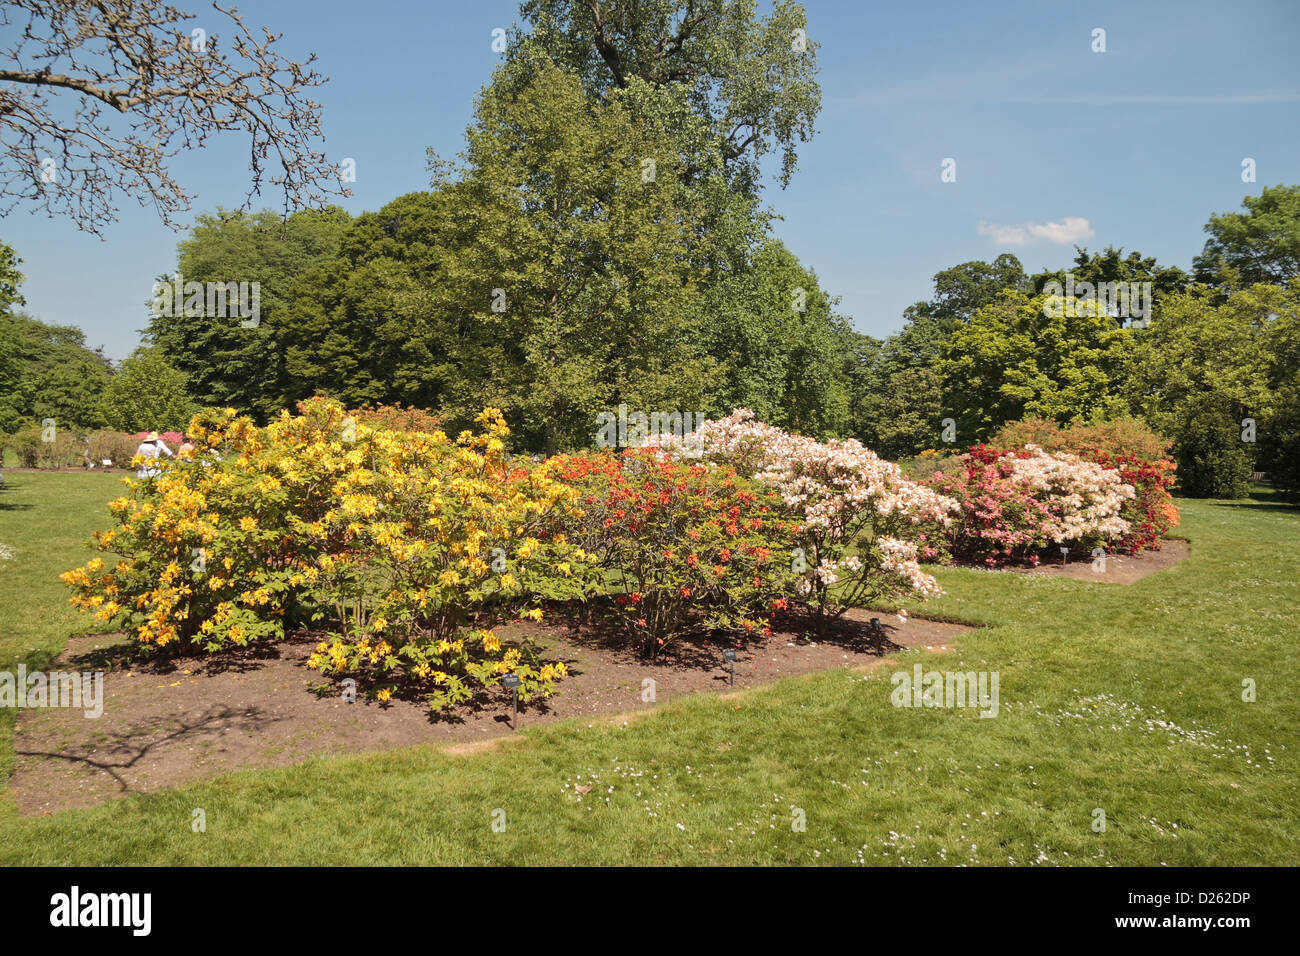 The Azalea Garden in The Royal Botanic Gardens, Kew, Surrey, England ...